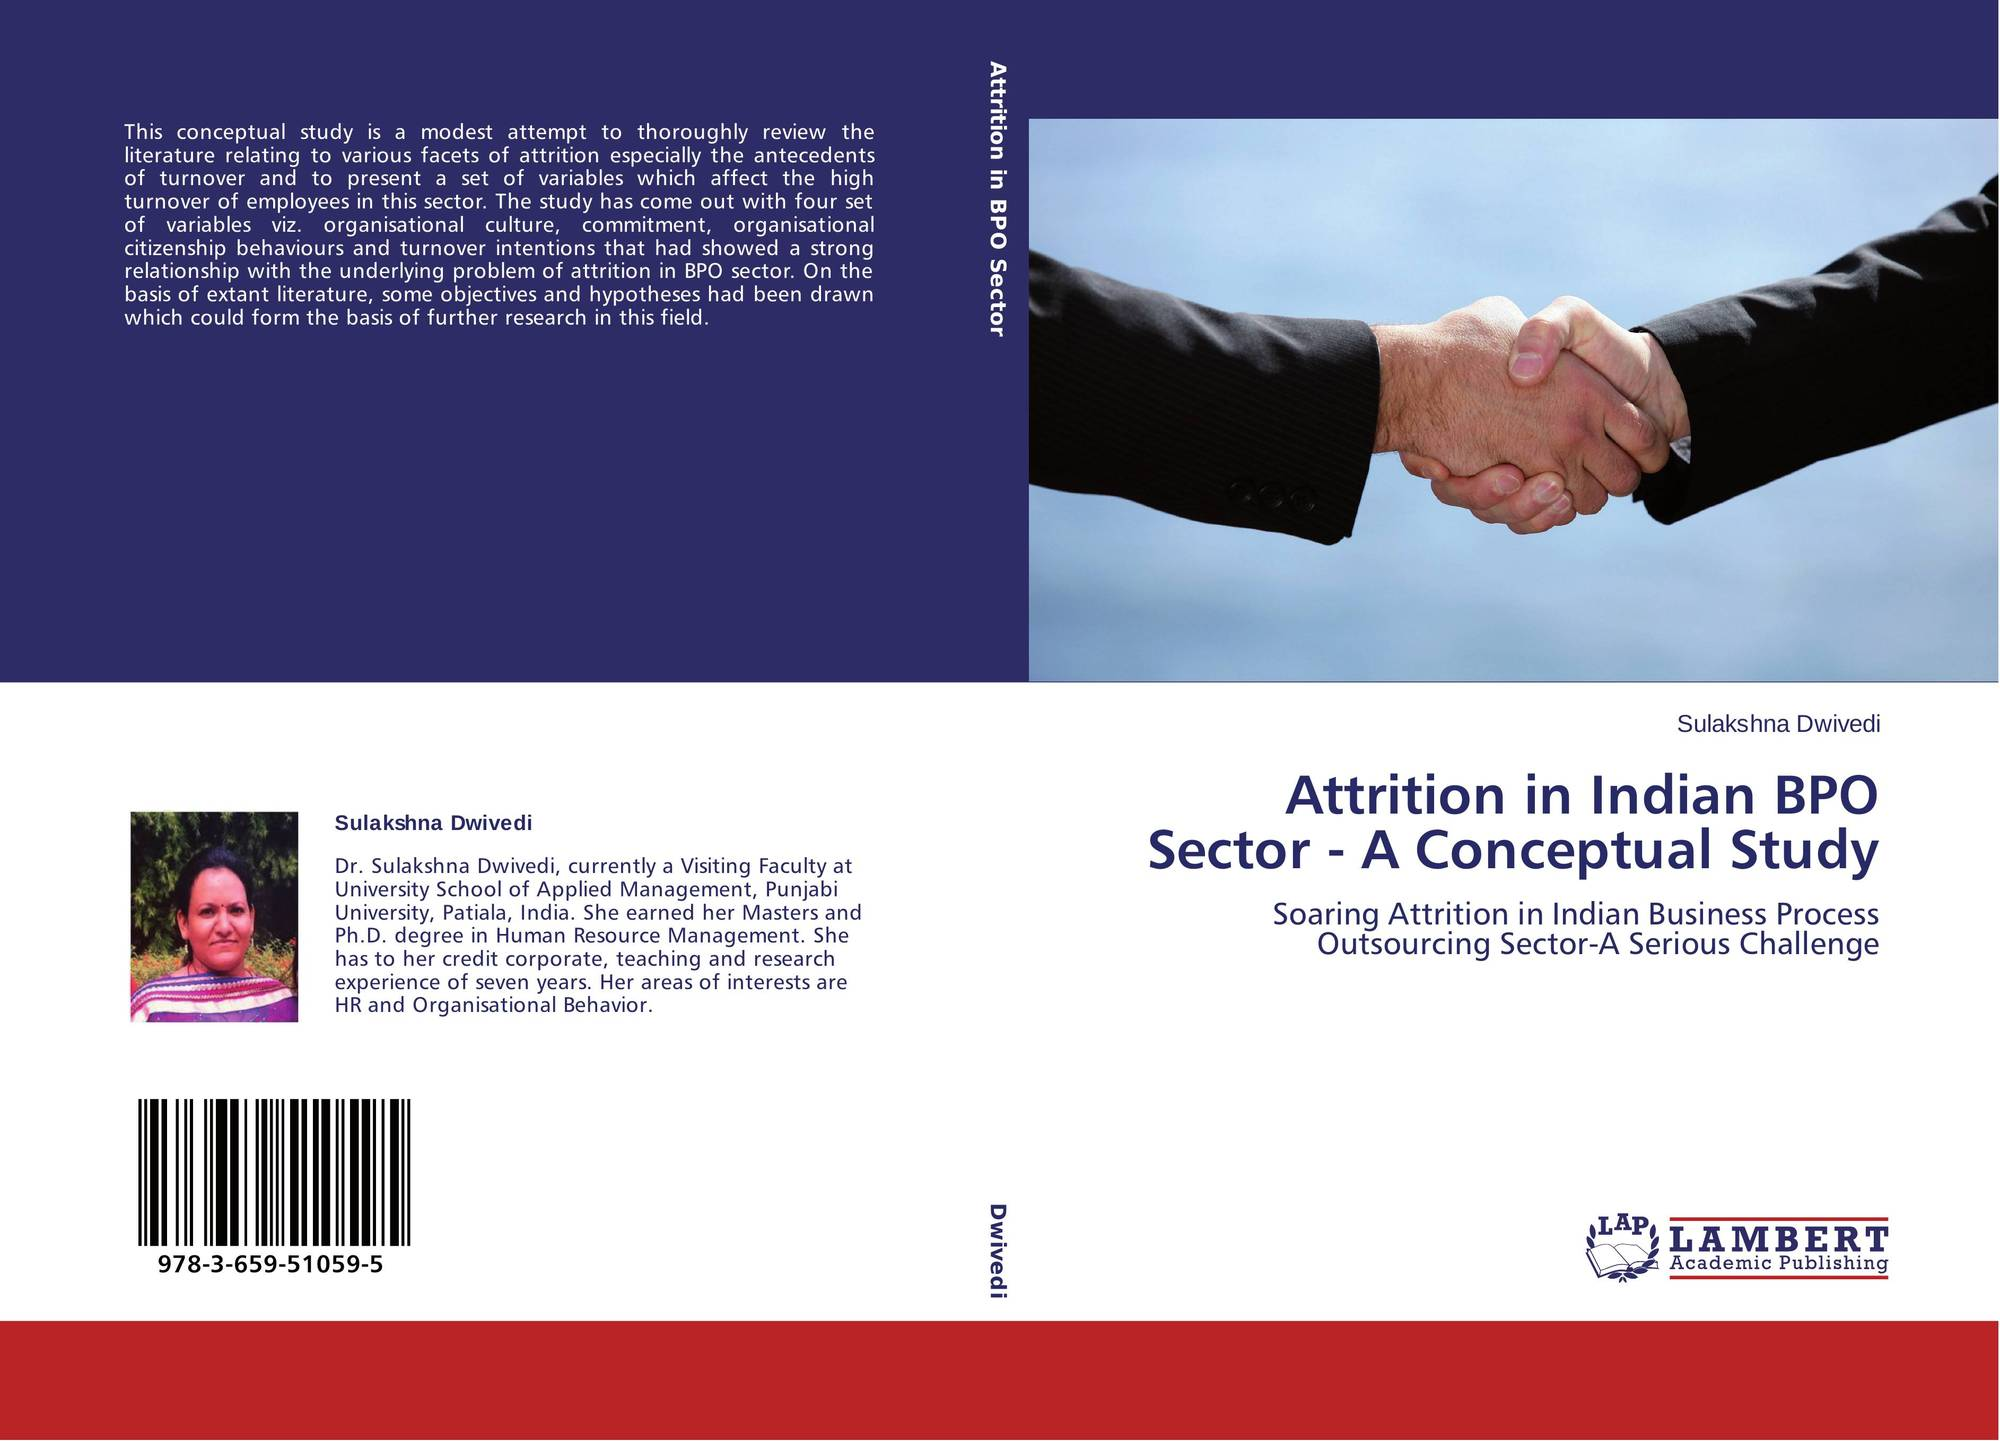 attrition in bpo industry a survey Empirical study on addressing high employee attrition in bpo industry focusing on employee salary and other factors in karnataka and kerala states of india.